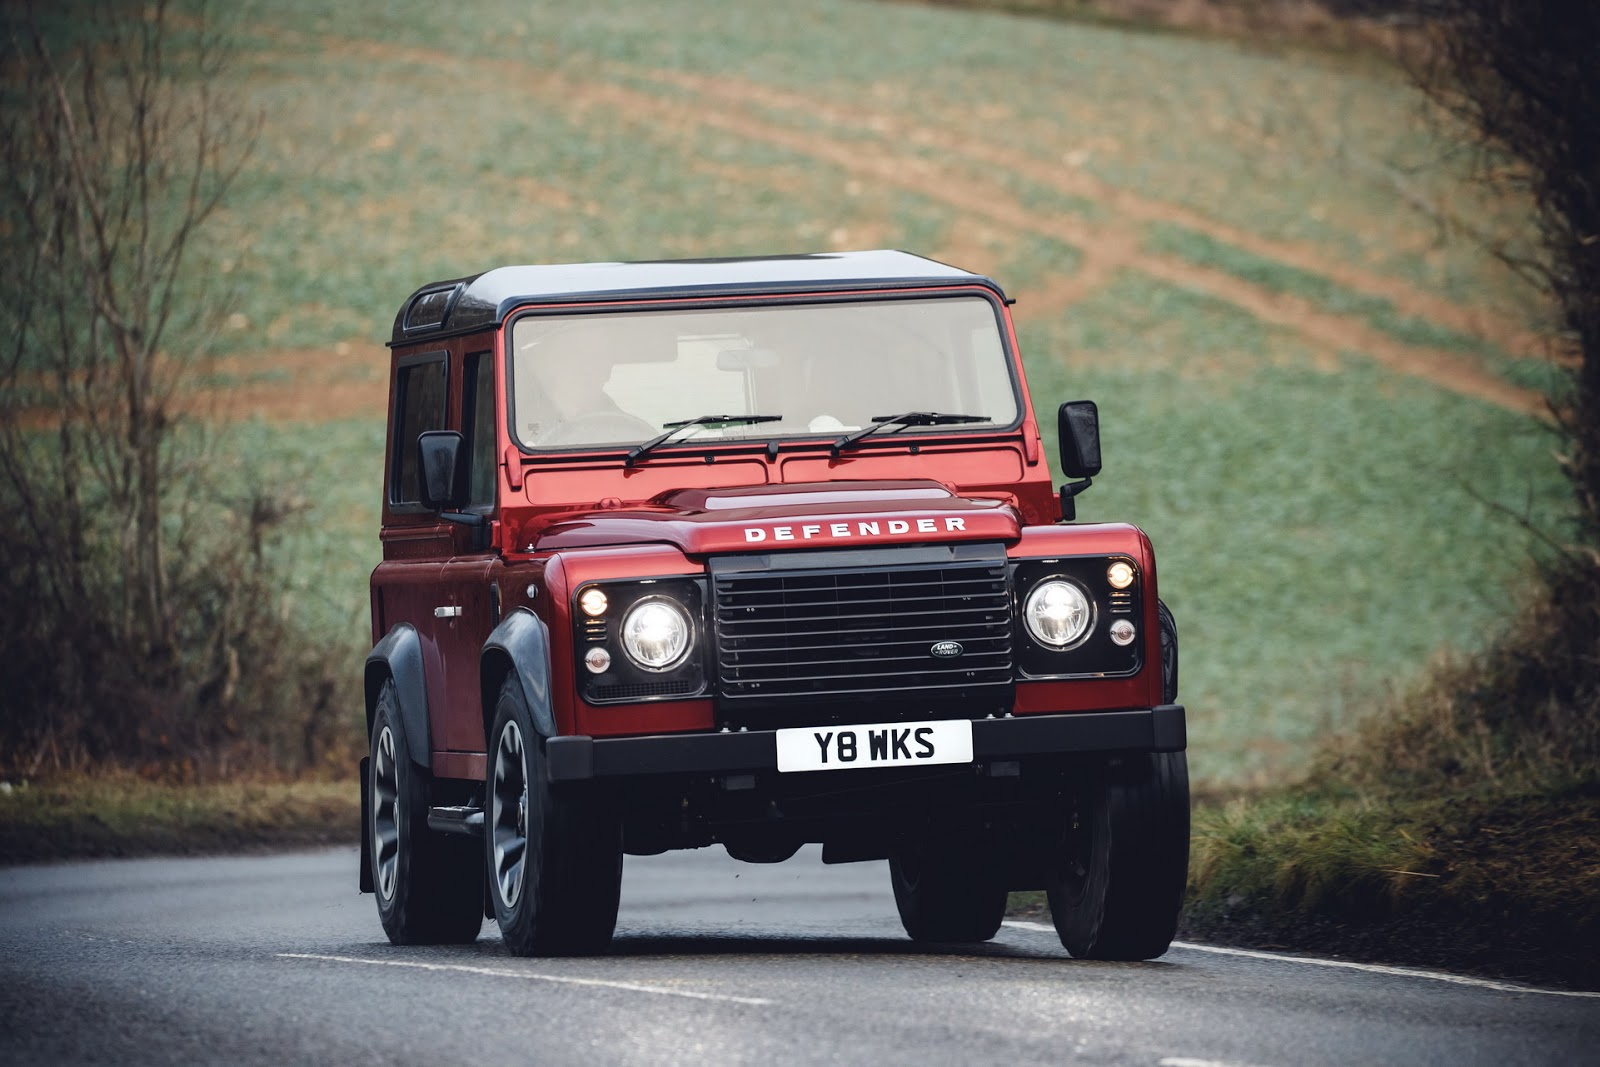 Old Land Rover Defender Returns For 2018 With V8-powered Special Edition - autoevolution